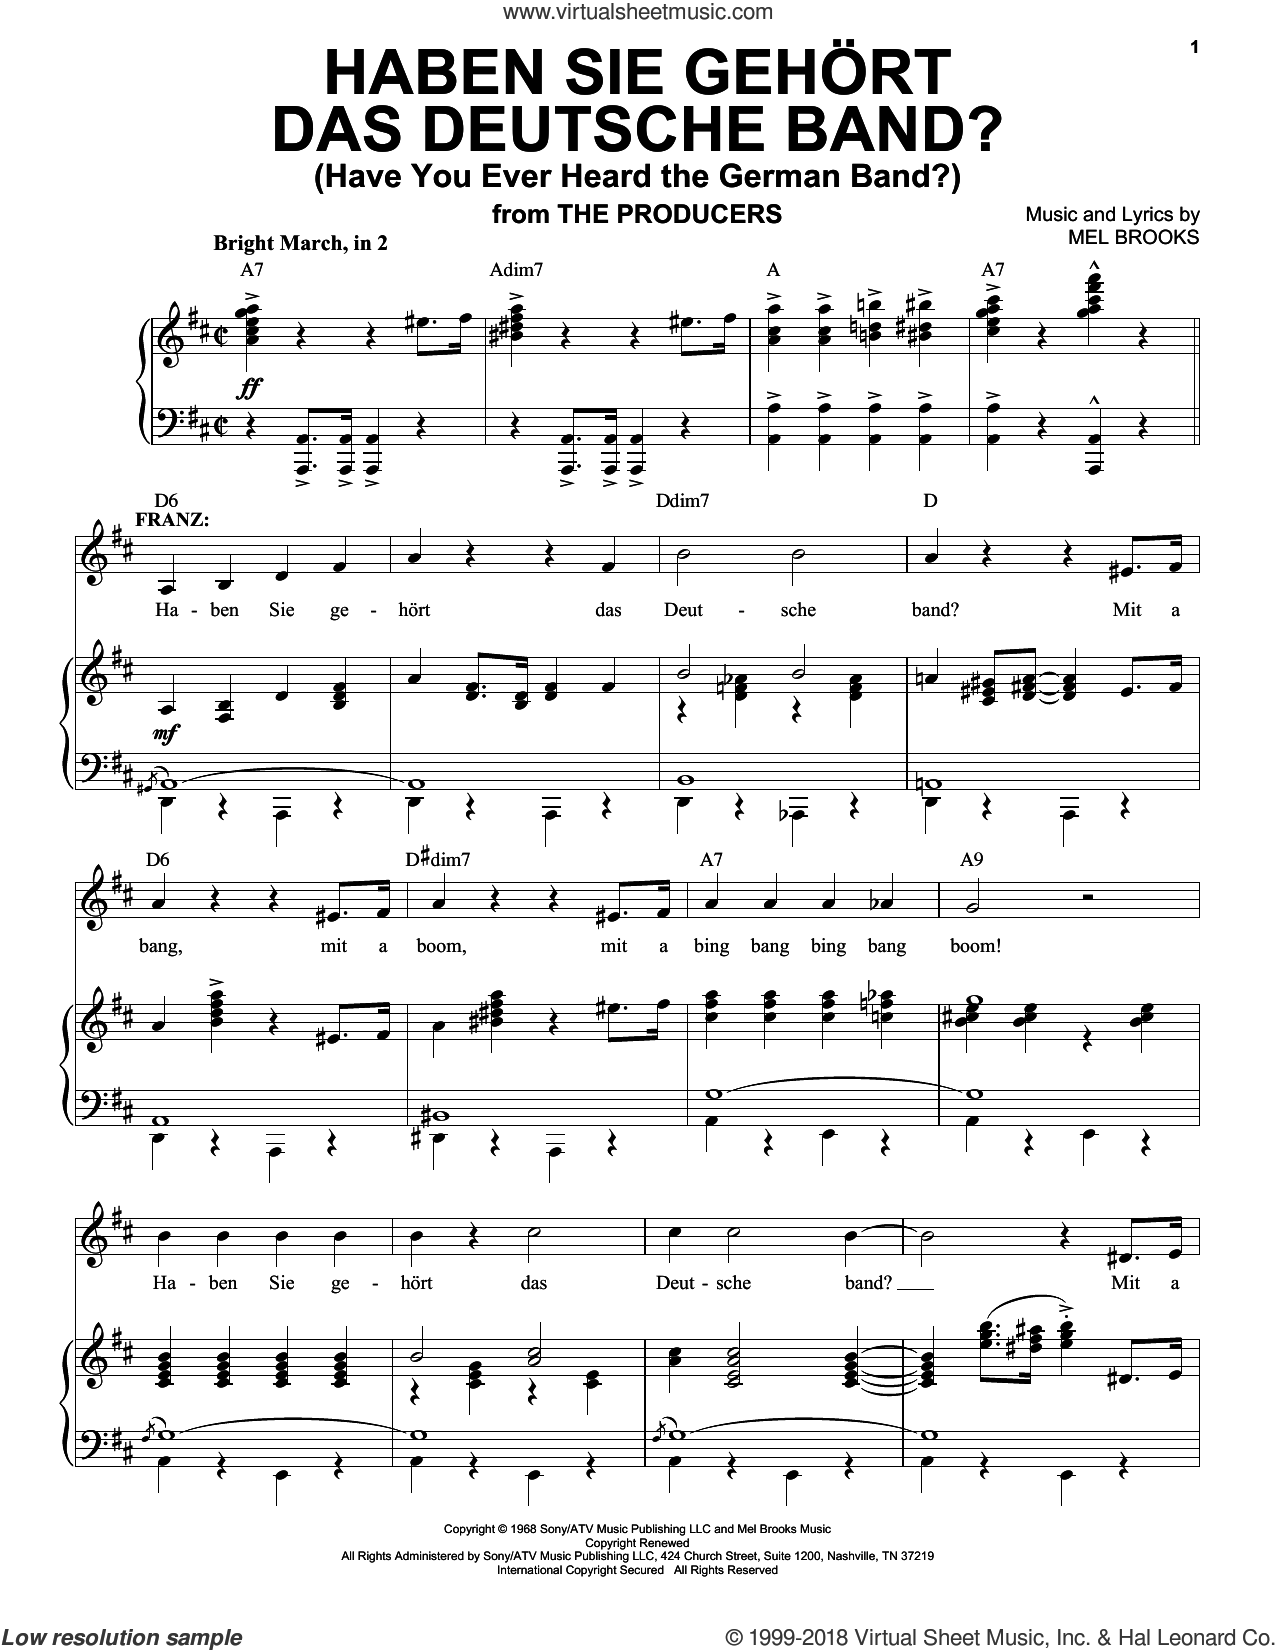 Haben Sie Gehort Das Deutsche Band? (Have You Ever Heard The German Band?) sheet music for voice and piano by Mel Brooks, intermediate skill level